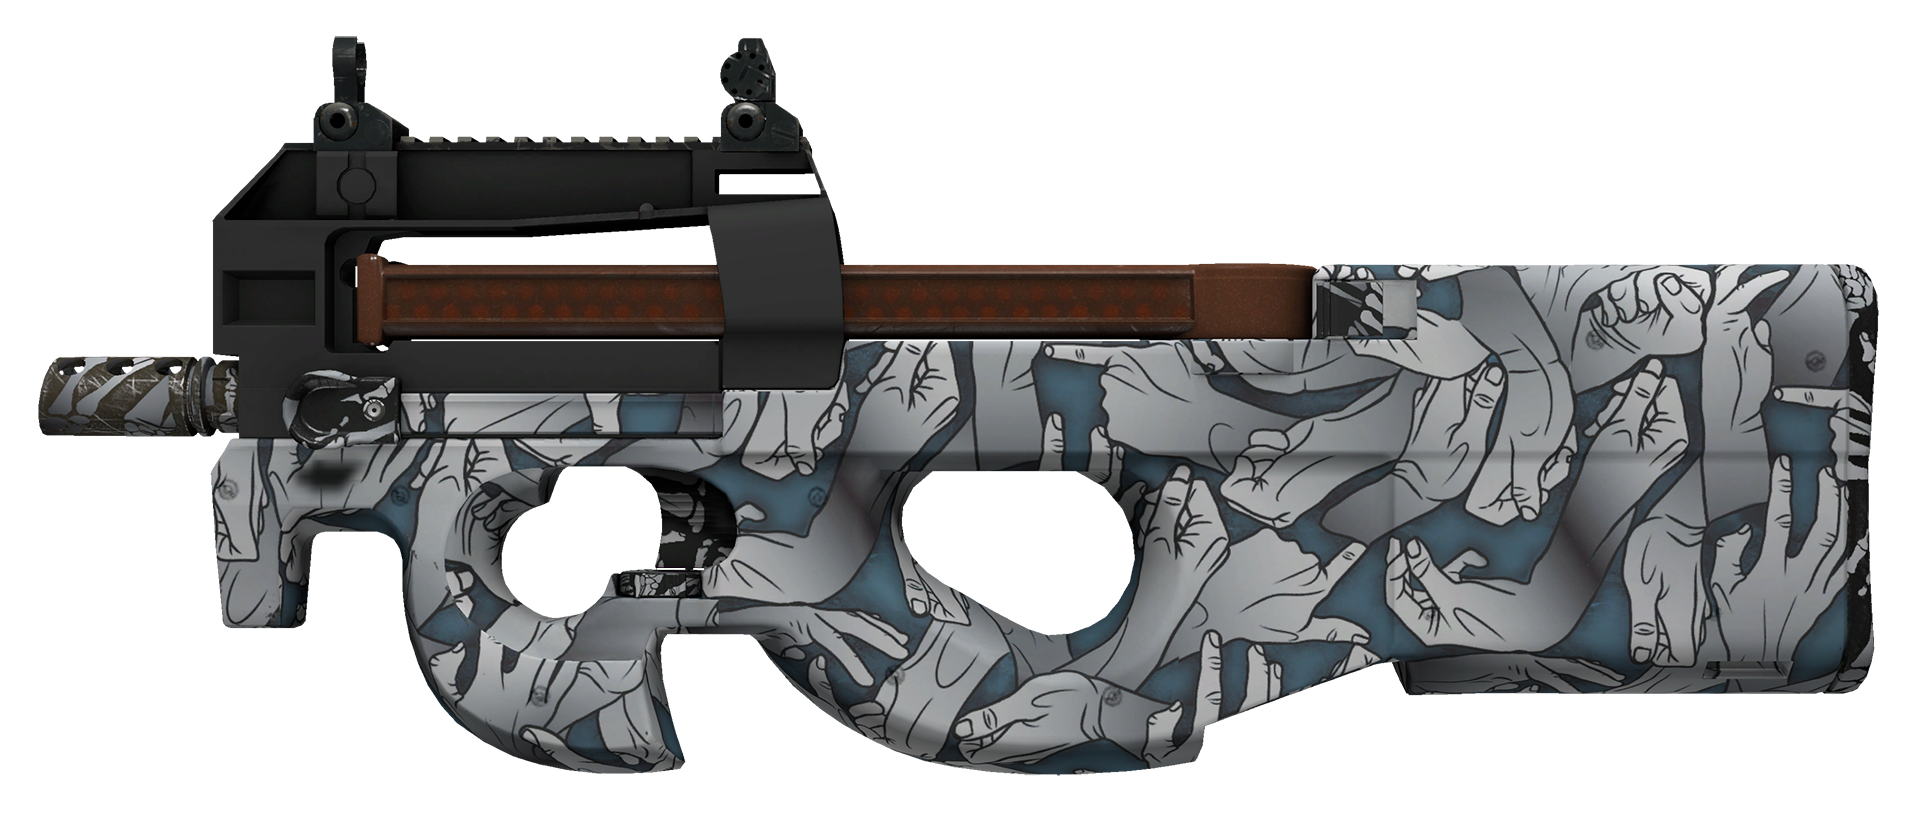 P90 Death Grip Large Rendering